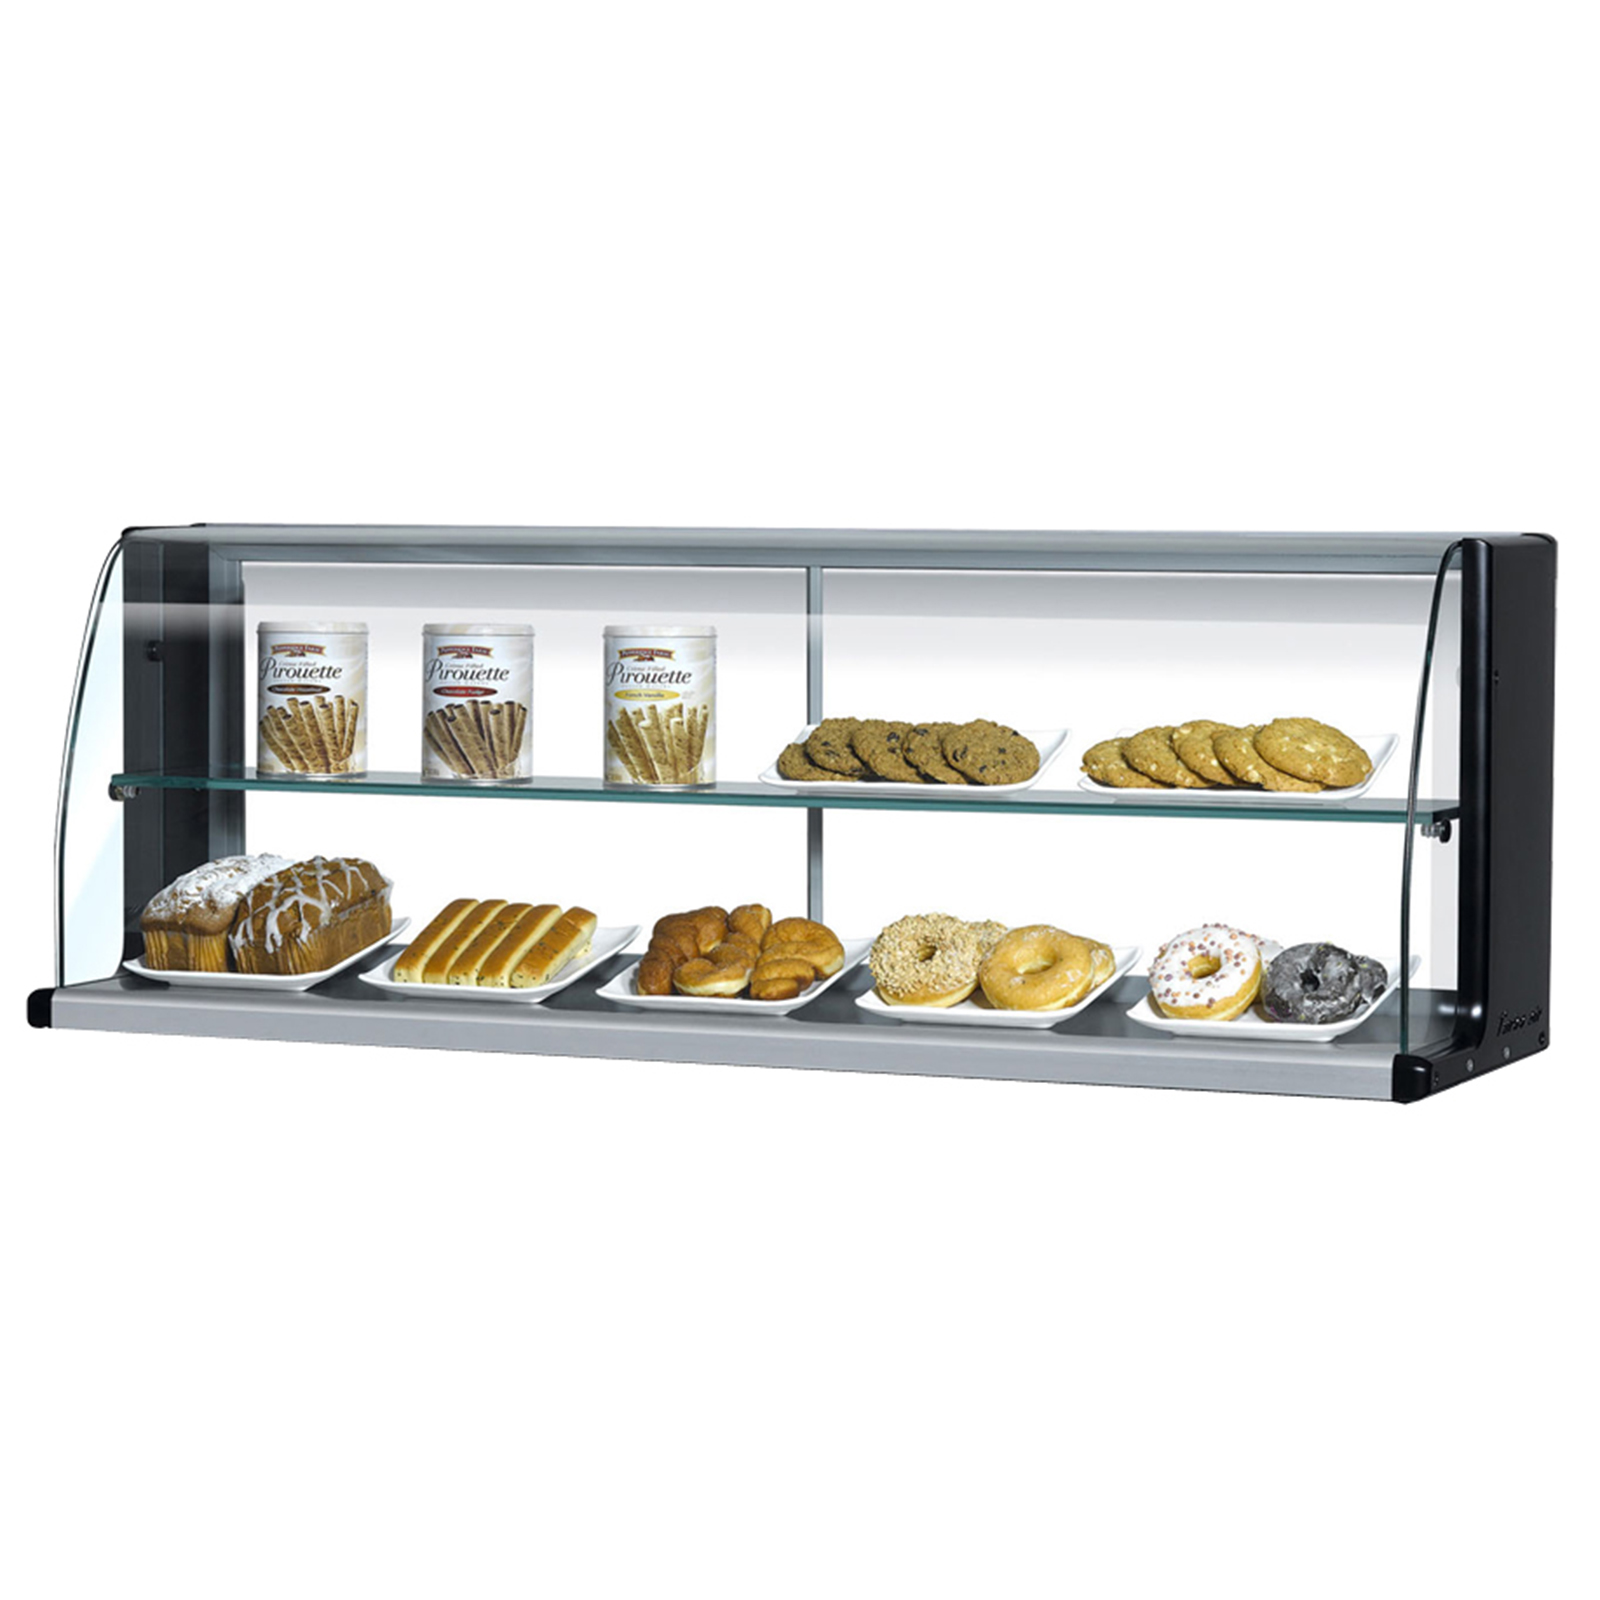 Turbo Air TOMD-60HW display case, non-refrigerated countertop